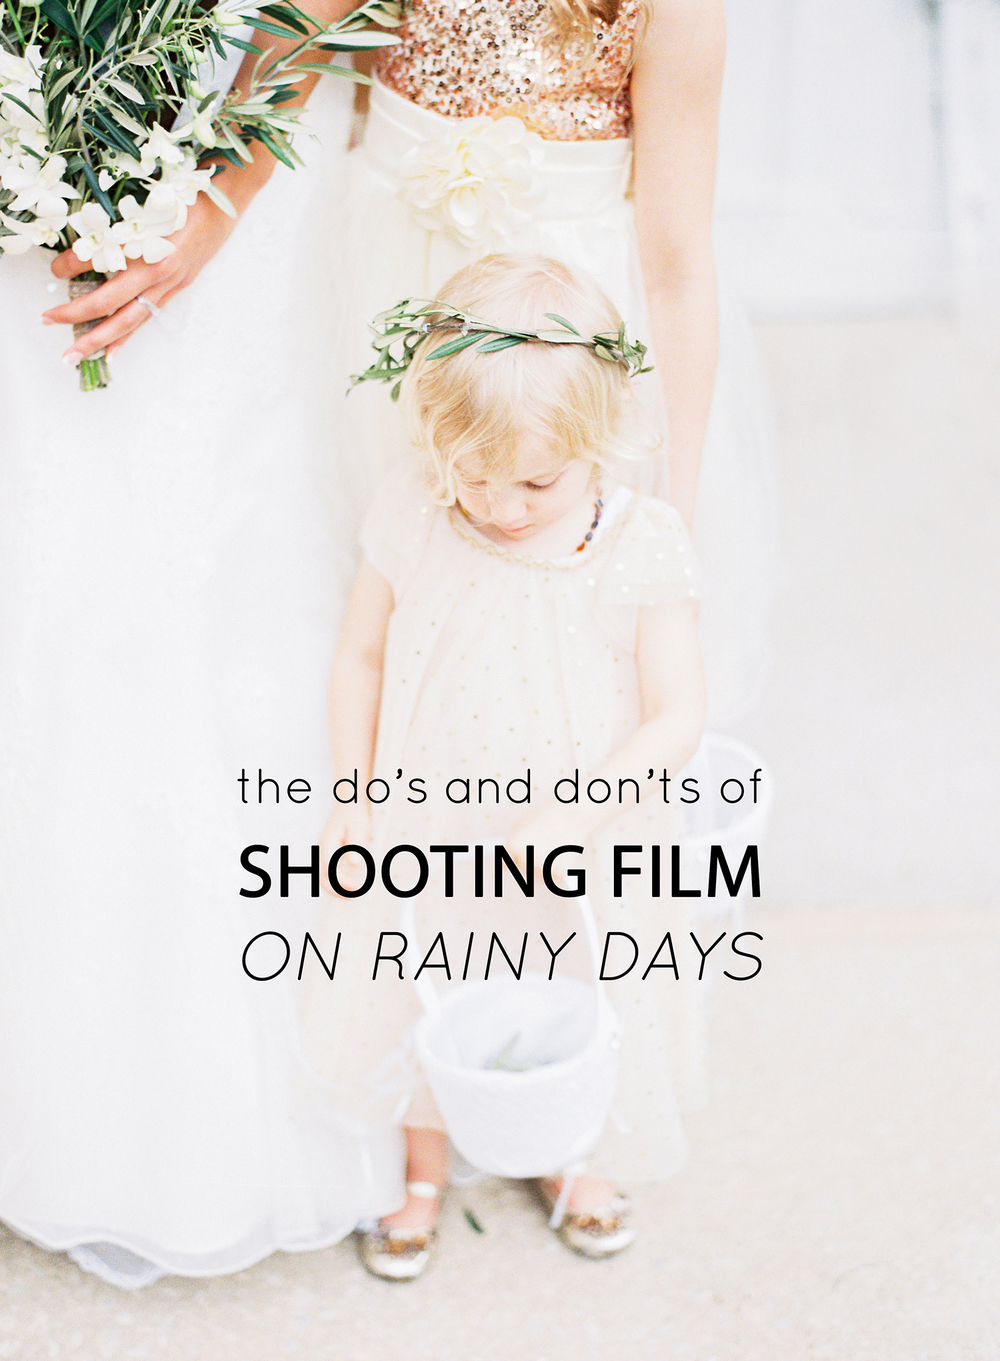 The Do's and Don'ts of Shooting Film on Rainy Days - The Jordan Brittley Blog (www.jordanbrittleyblog.com)